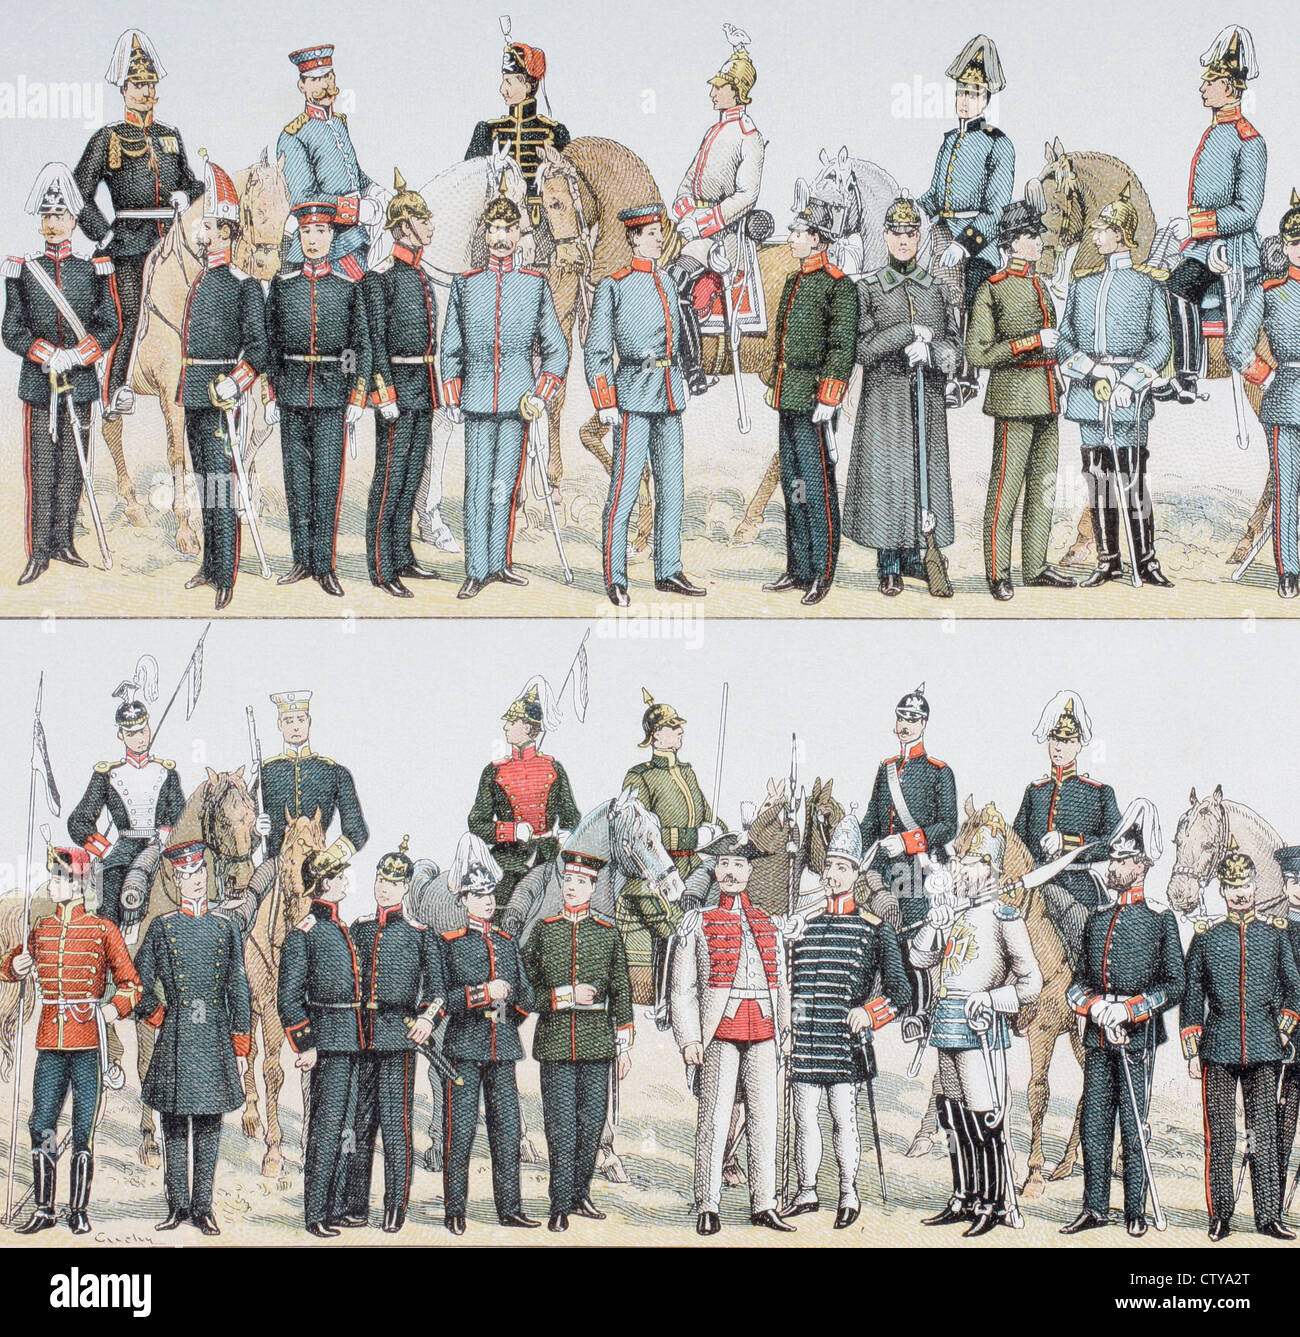 German army and cavalry uniforms at the turn of the 20th century. - Stock Image